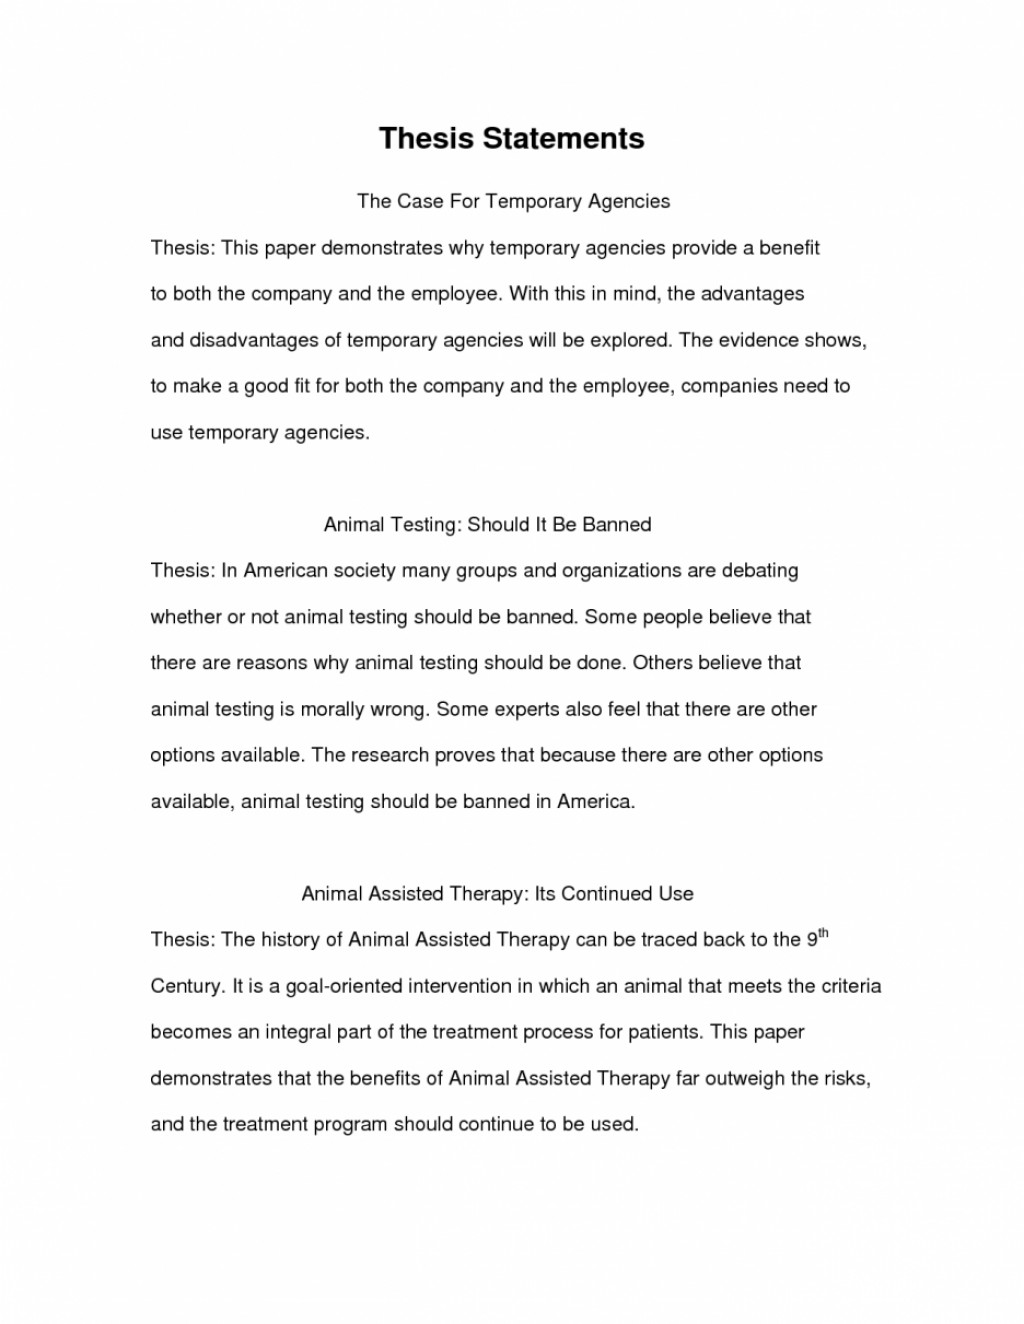 Thesis Statement Essays  Business Essay Example also What Is A Thesis Statement For An Essay  Format Of Research Paper Example Essay Thesis Statement  Yellow Wallpaper Analysis Essay